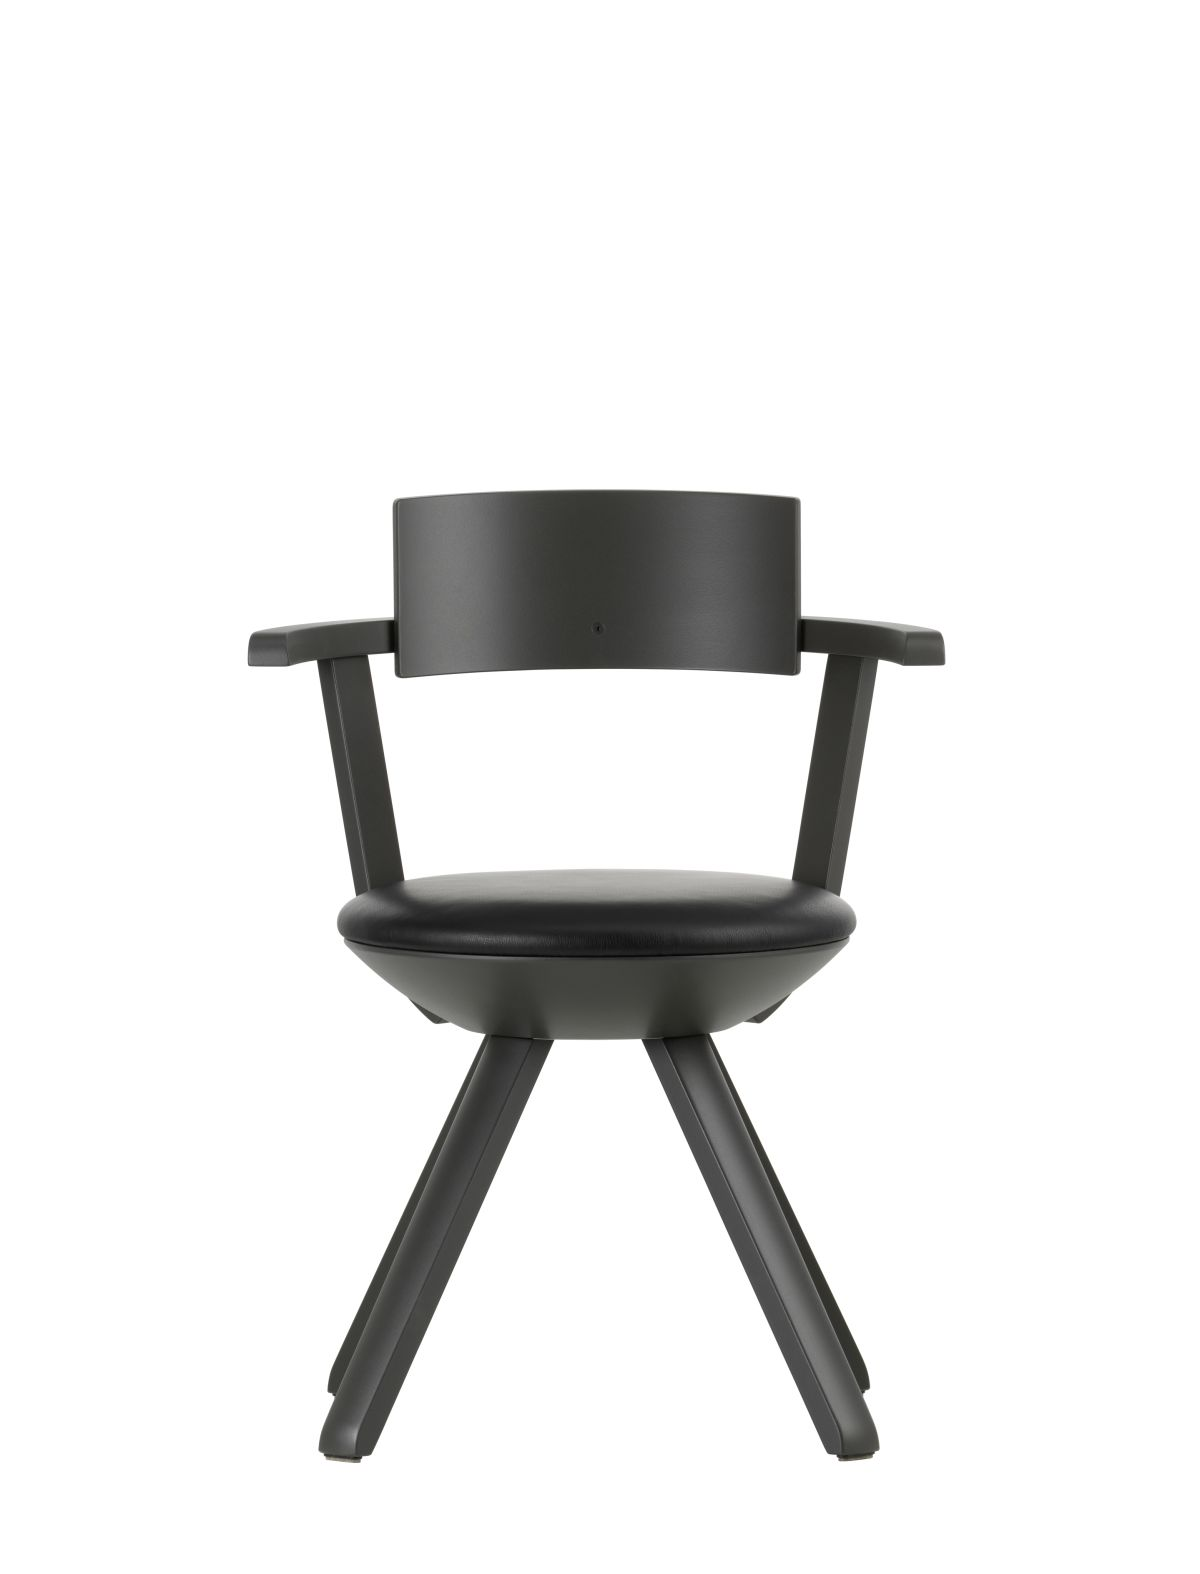 Rival-Chair-Kg002-Asphalt-Lacquer-Nero-Leather-Upholstery